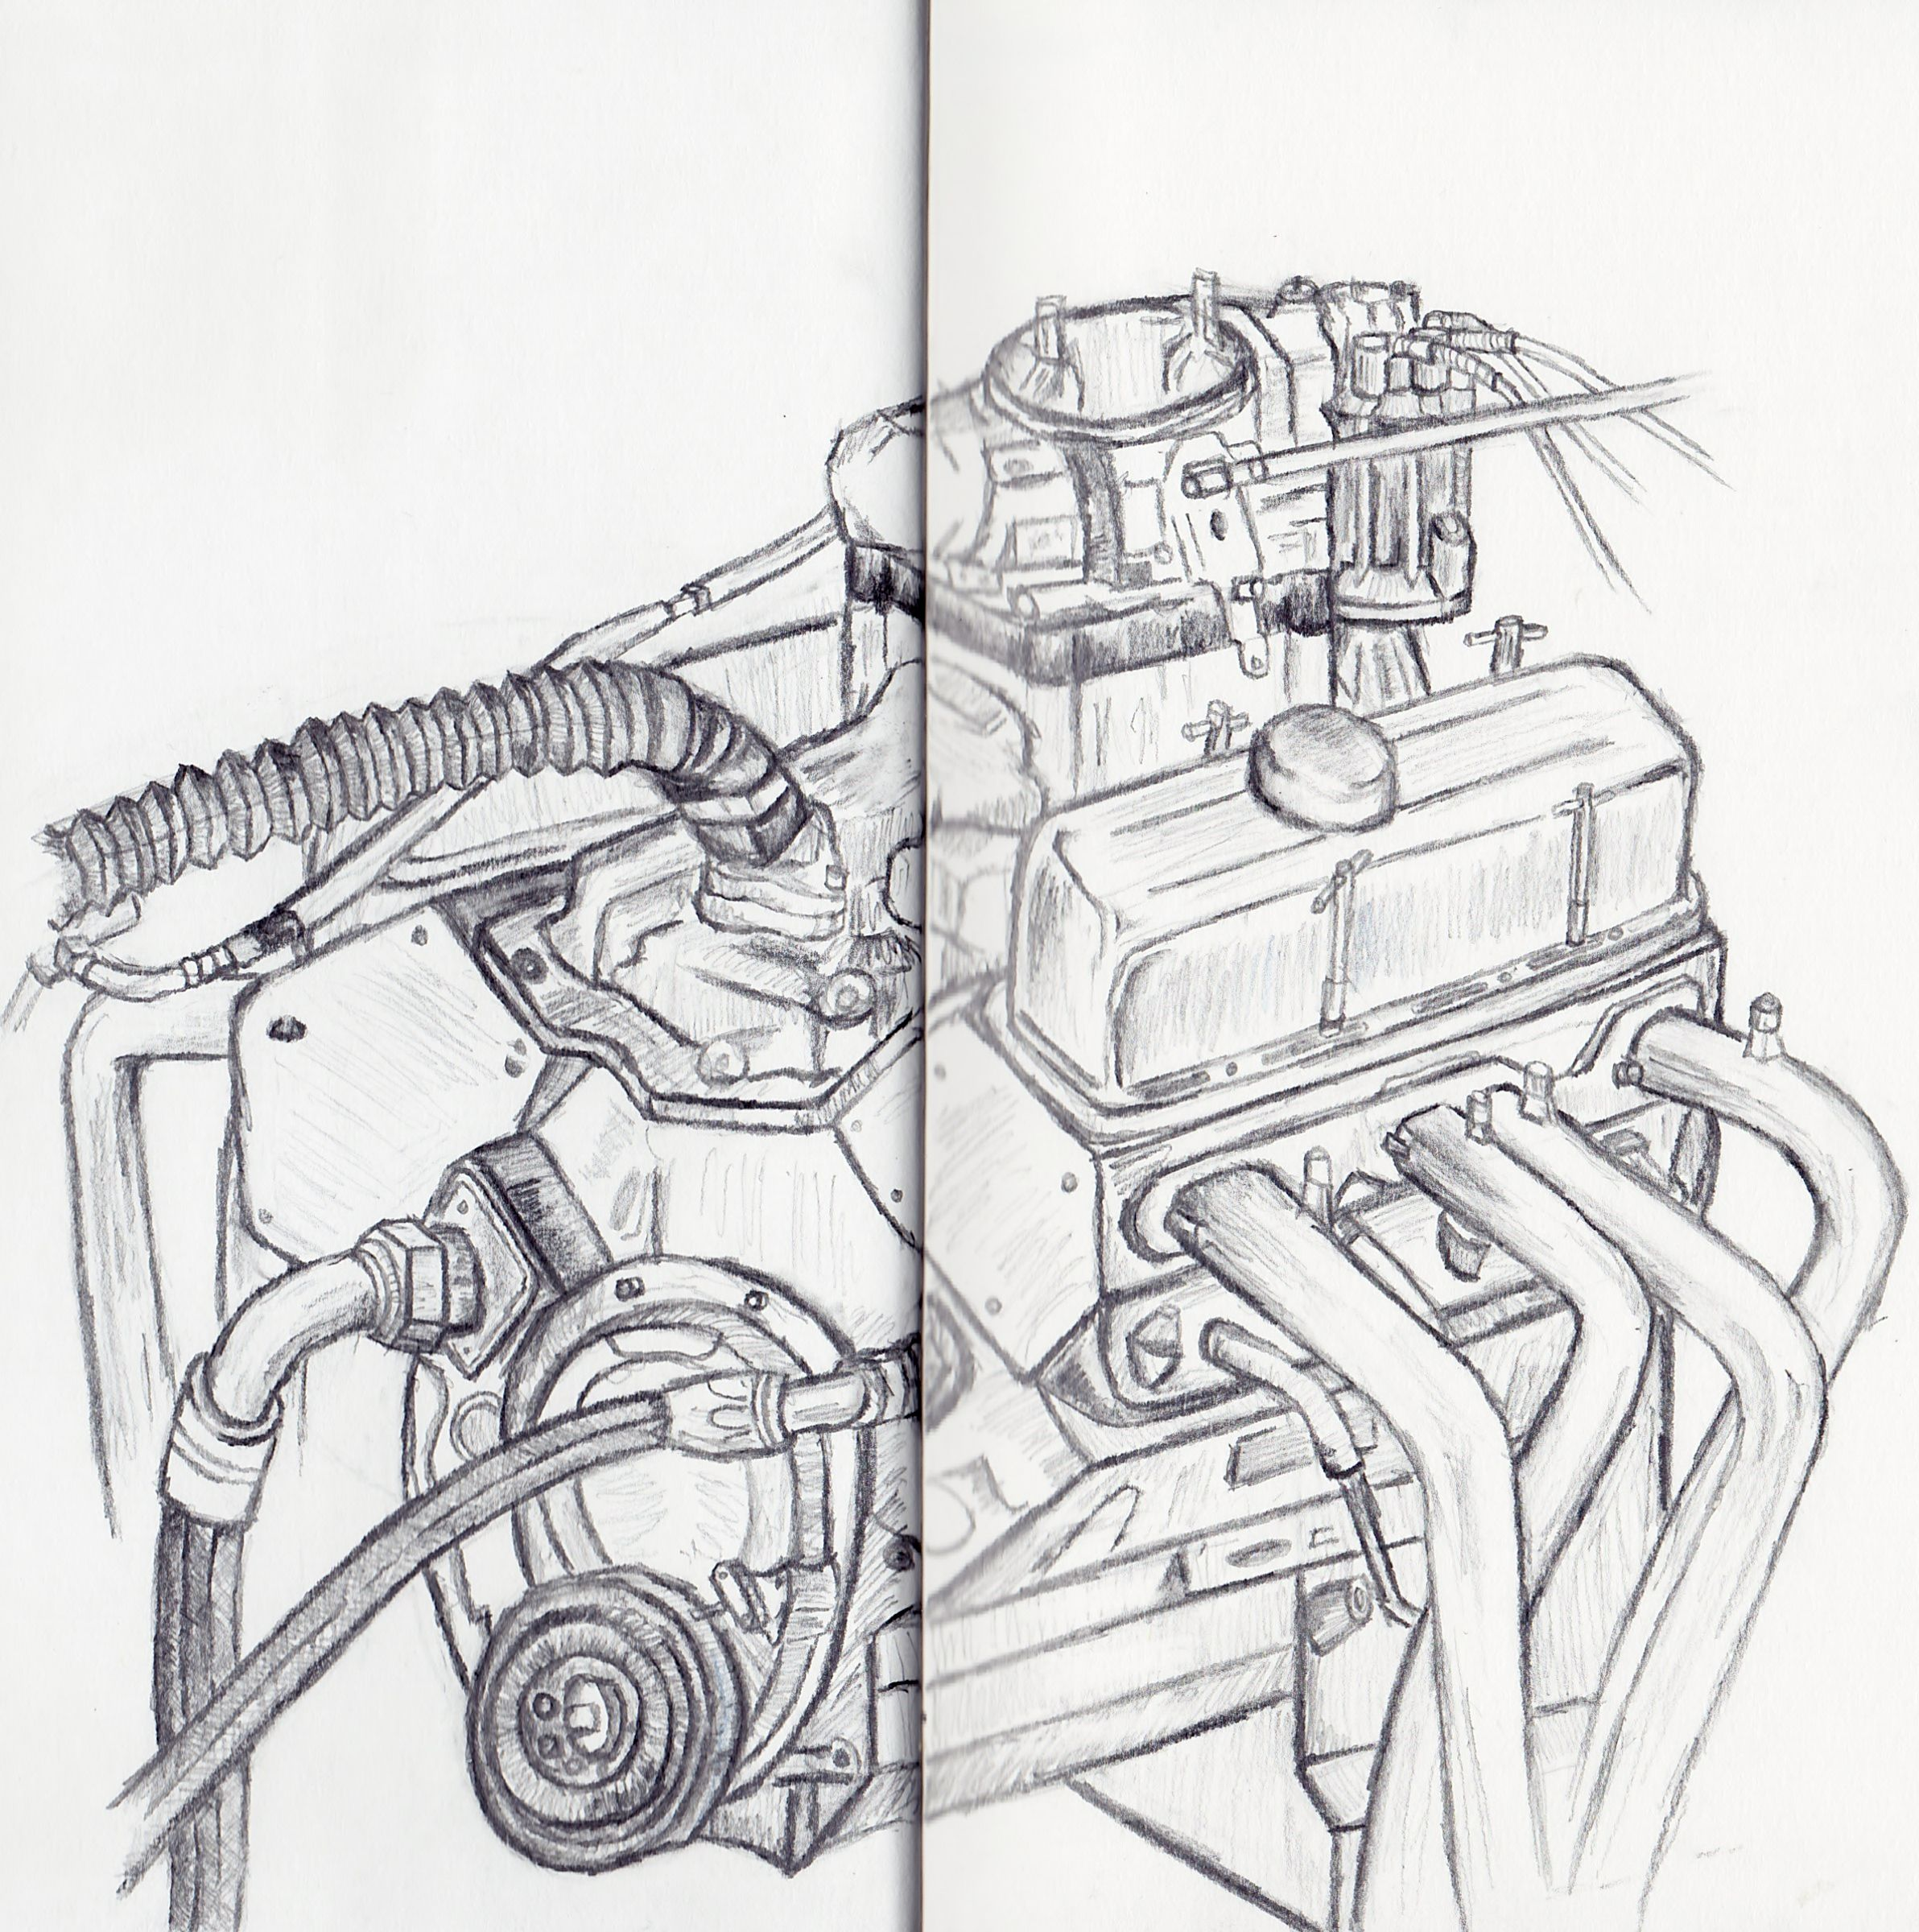 Car engine drawing, 12th July deadline | Drawings | Pinterest ...